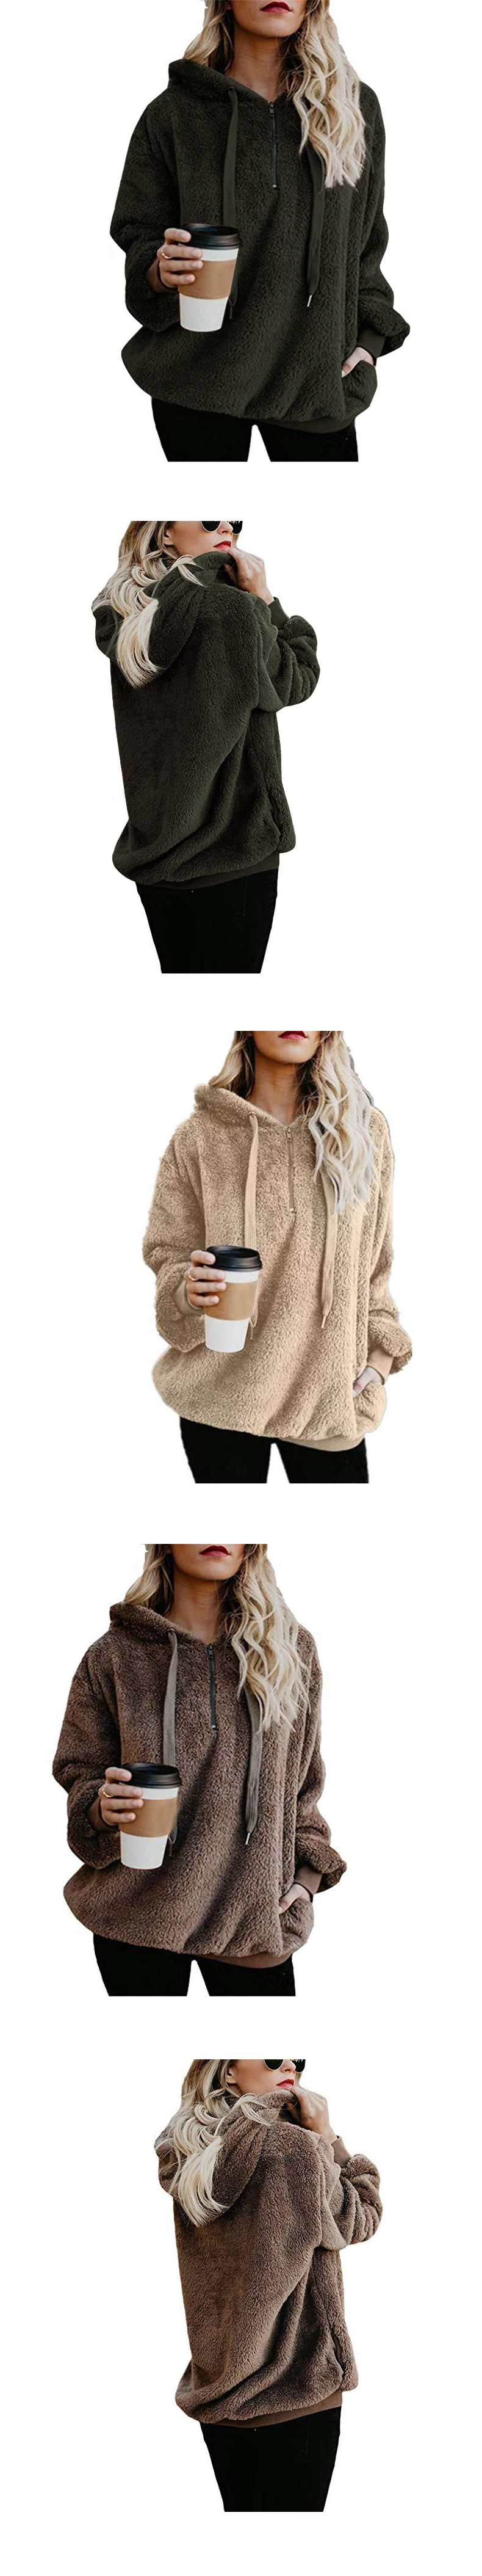 China Manufactory xxxl Hoodies For Woman Wool Hoodie Set Winter Fleece Tracksuit With Fair Price